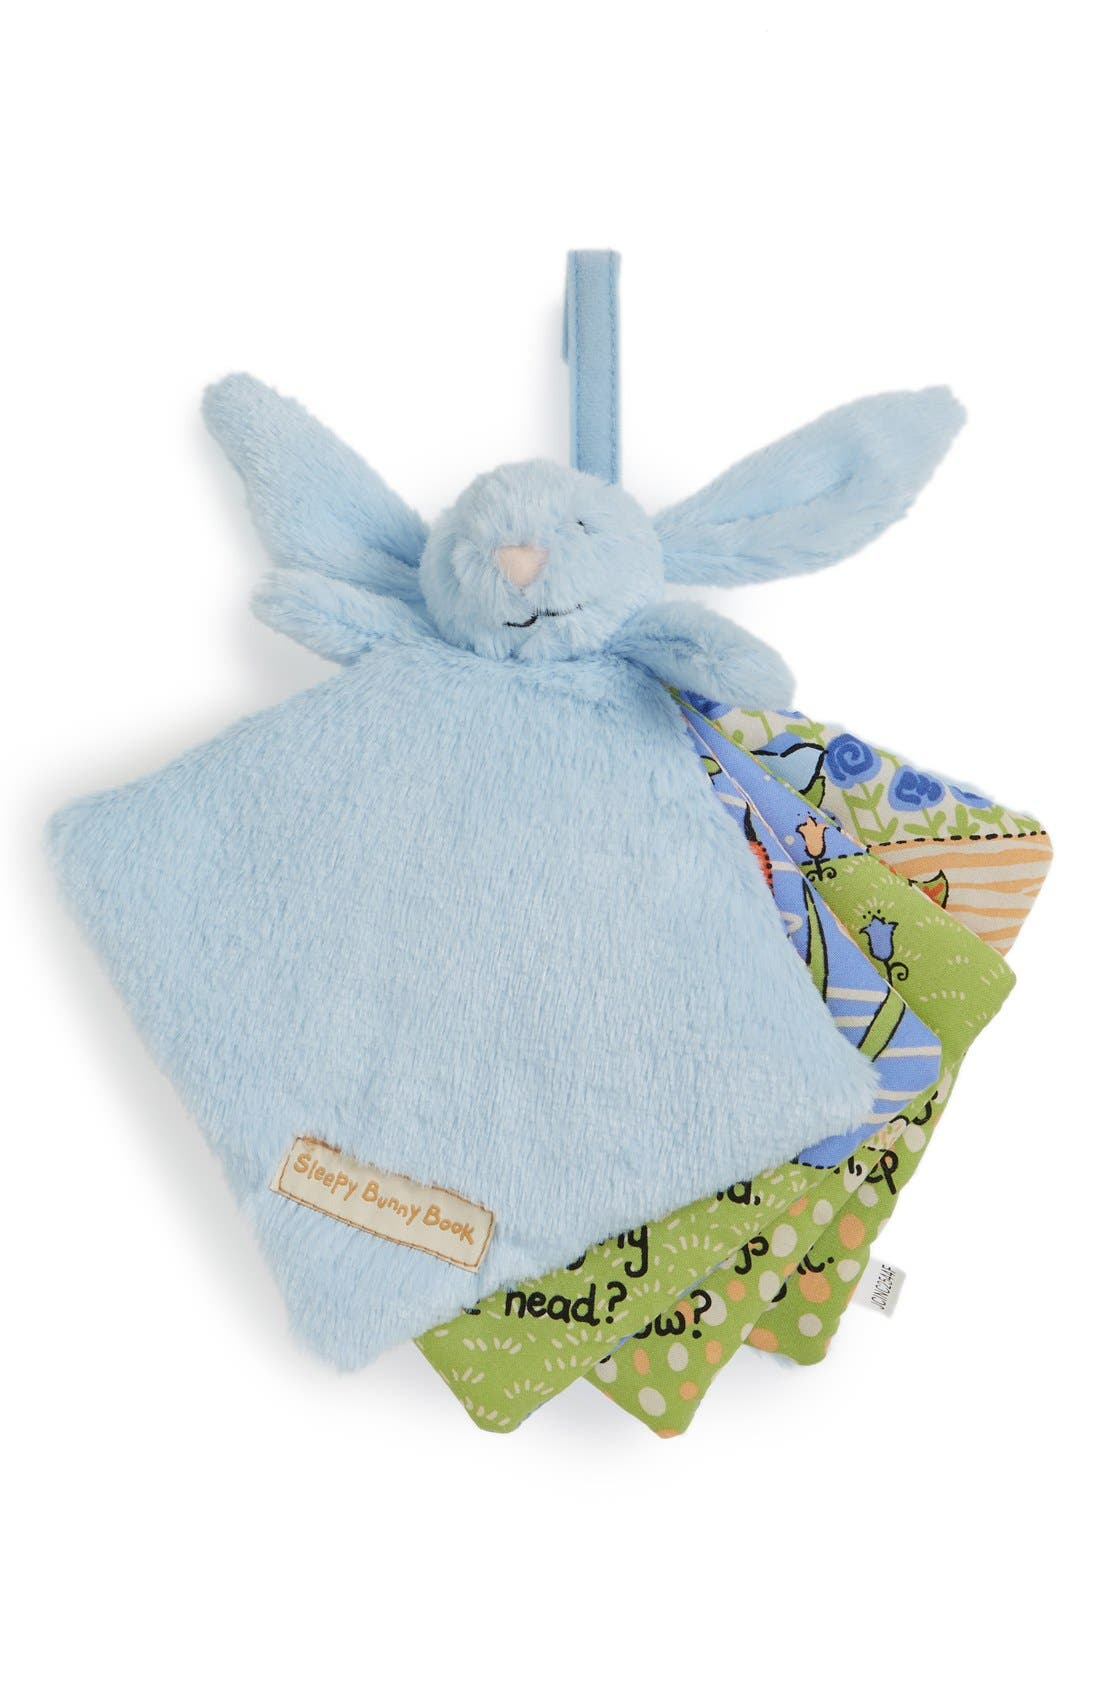 'Sleepy Bunny' Soft Fabric Book,                         Main,                         color, Blue